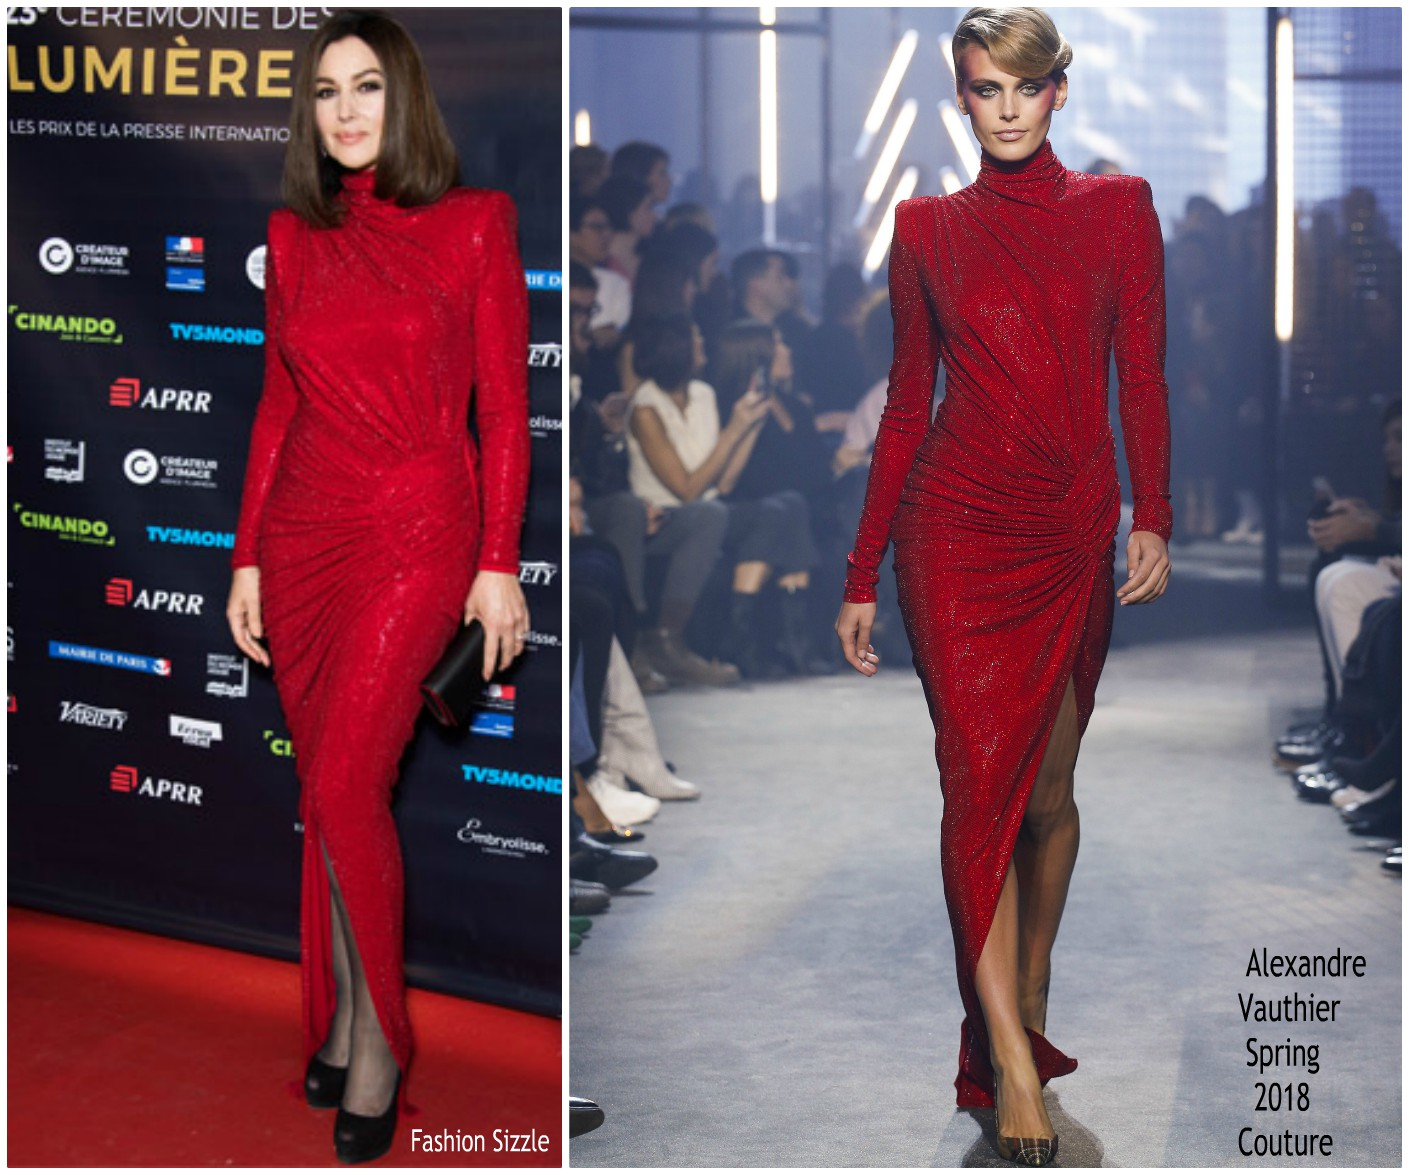 monica-bellucci-in-alexandre-vauthier-couture-23rd-lumieres-awards-ceremony